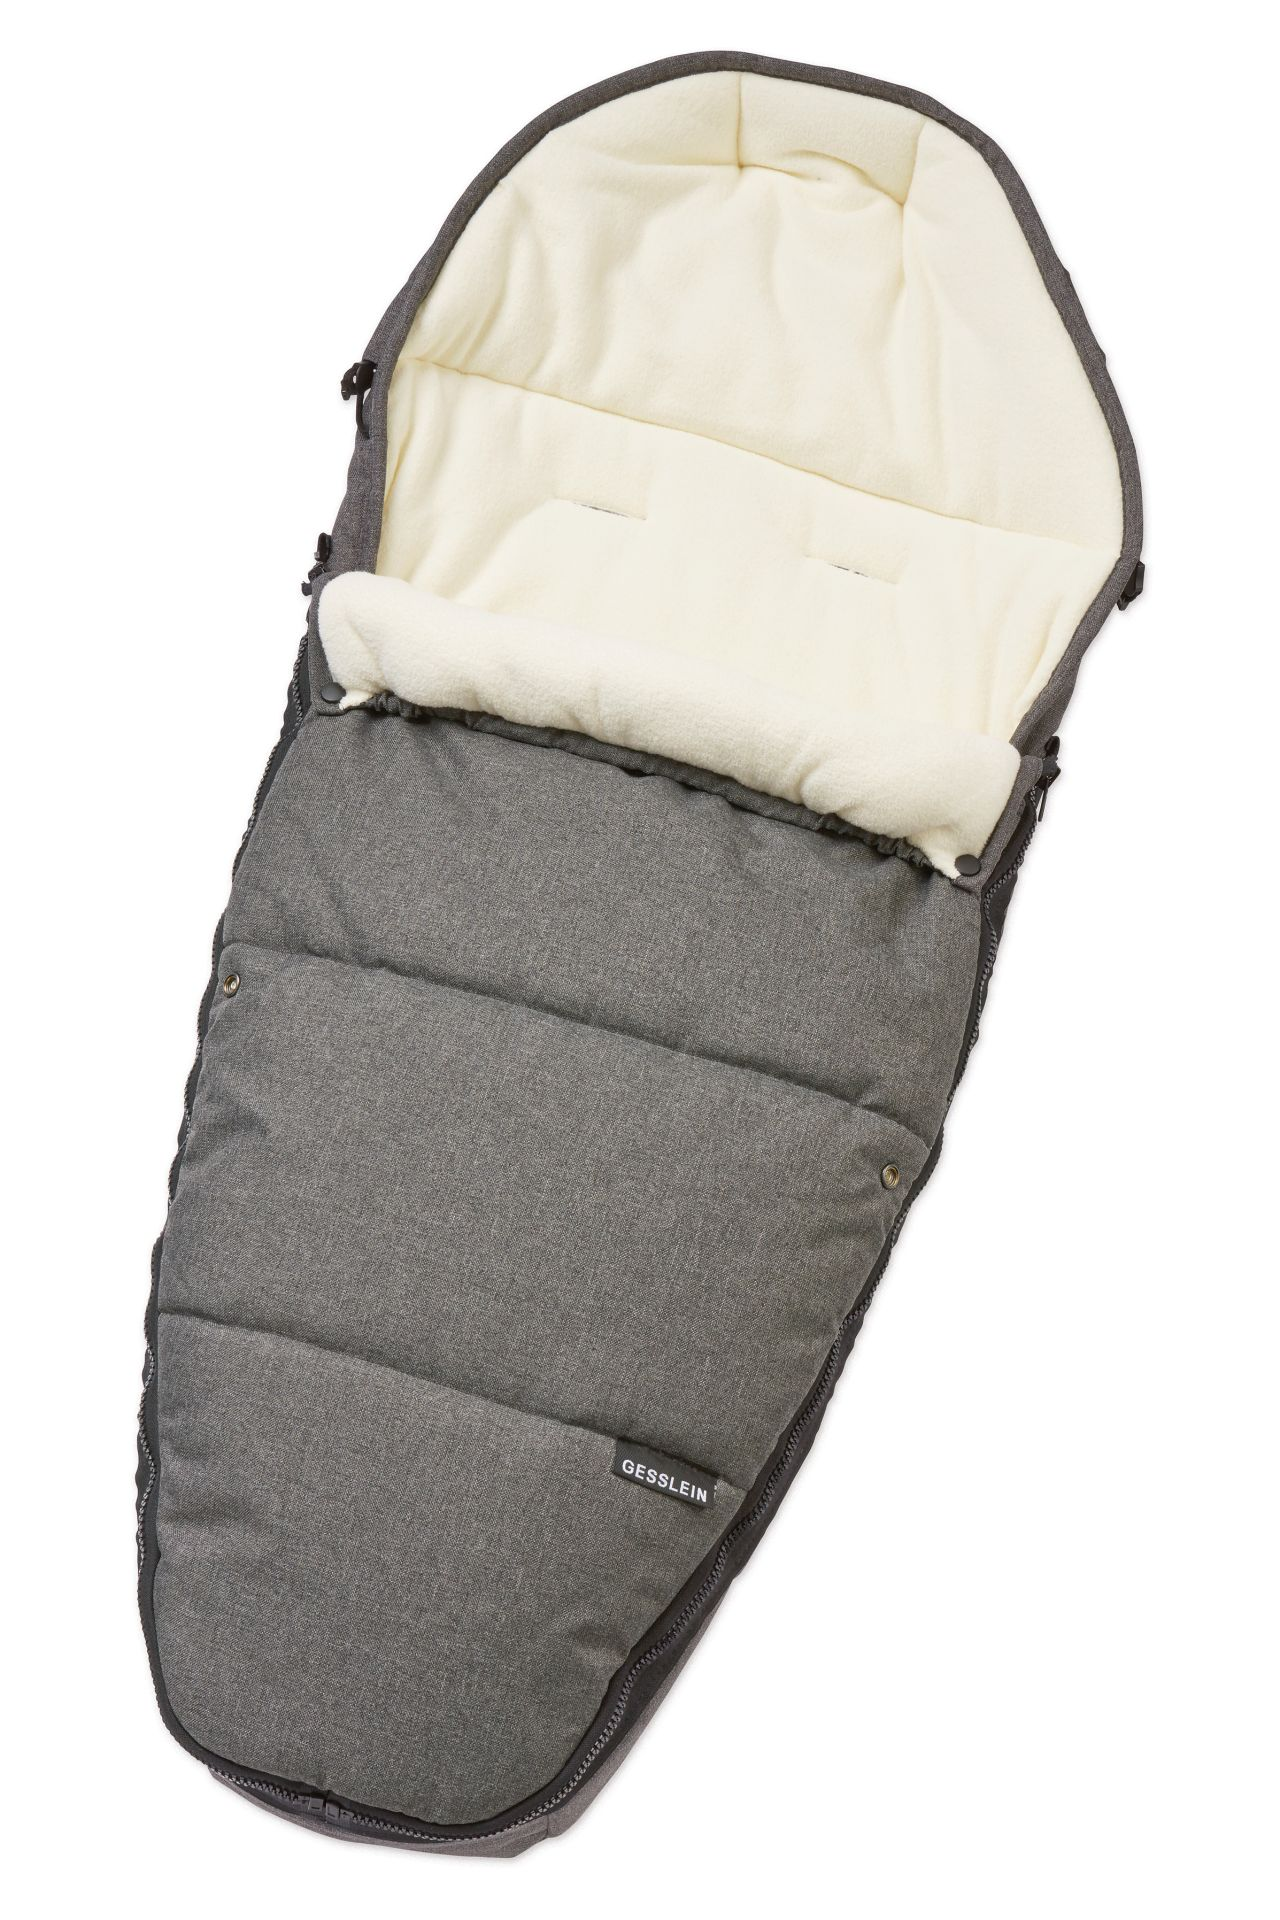 Maxi-cosi 2-in-1 Footmuff Winter Footmuff for Pushchair Choice of Colours New